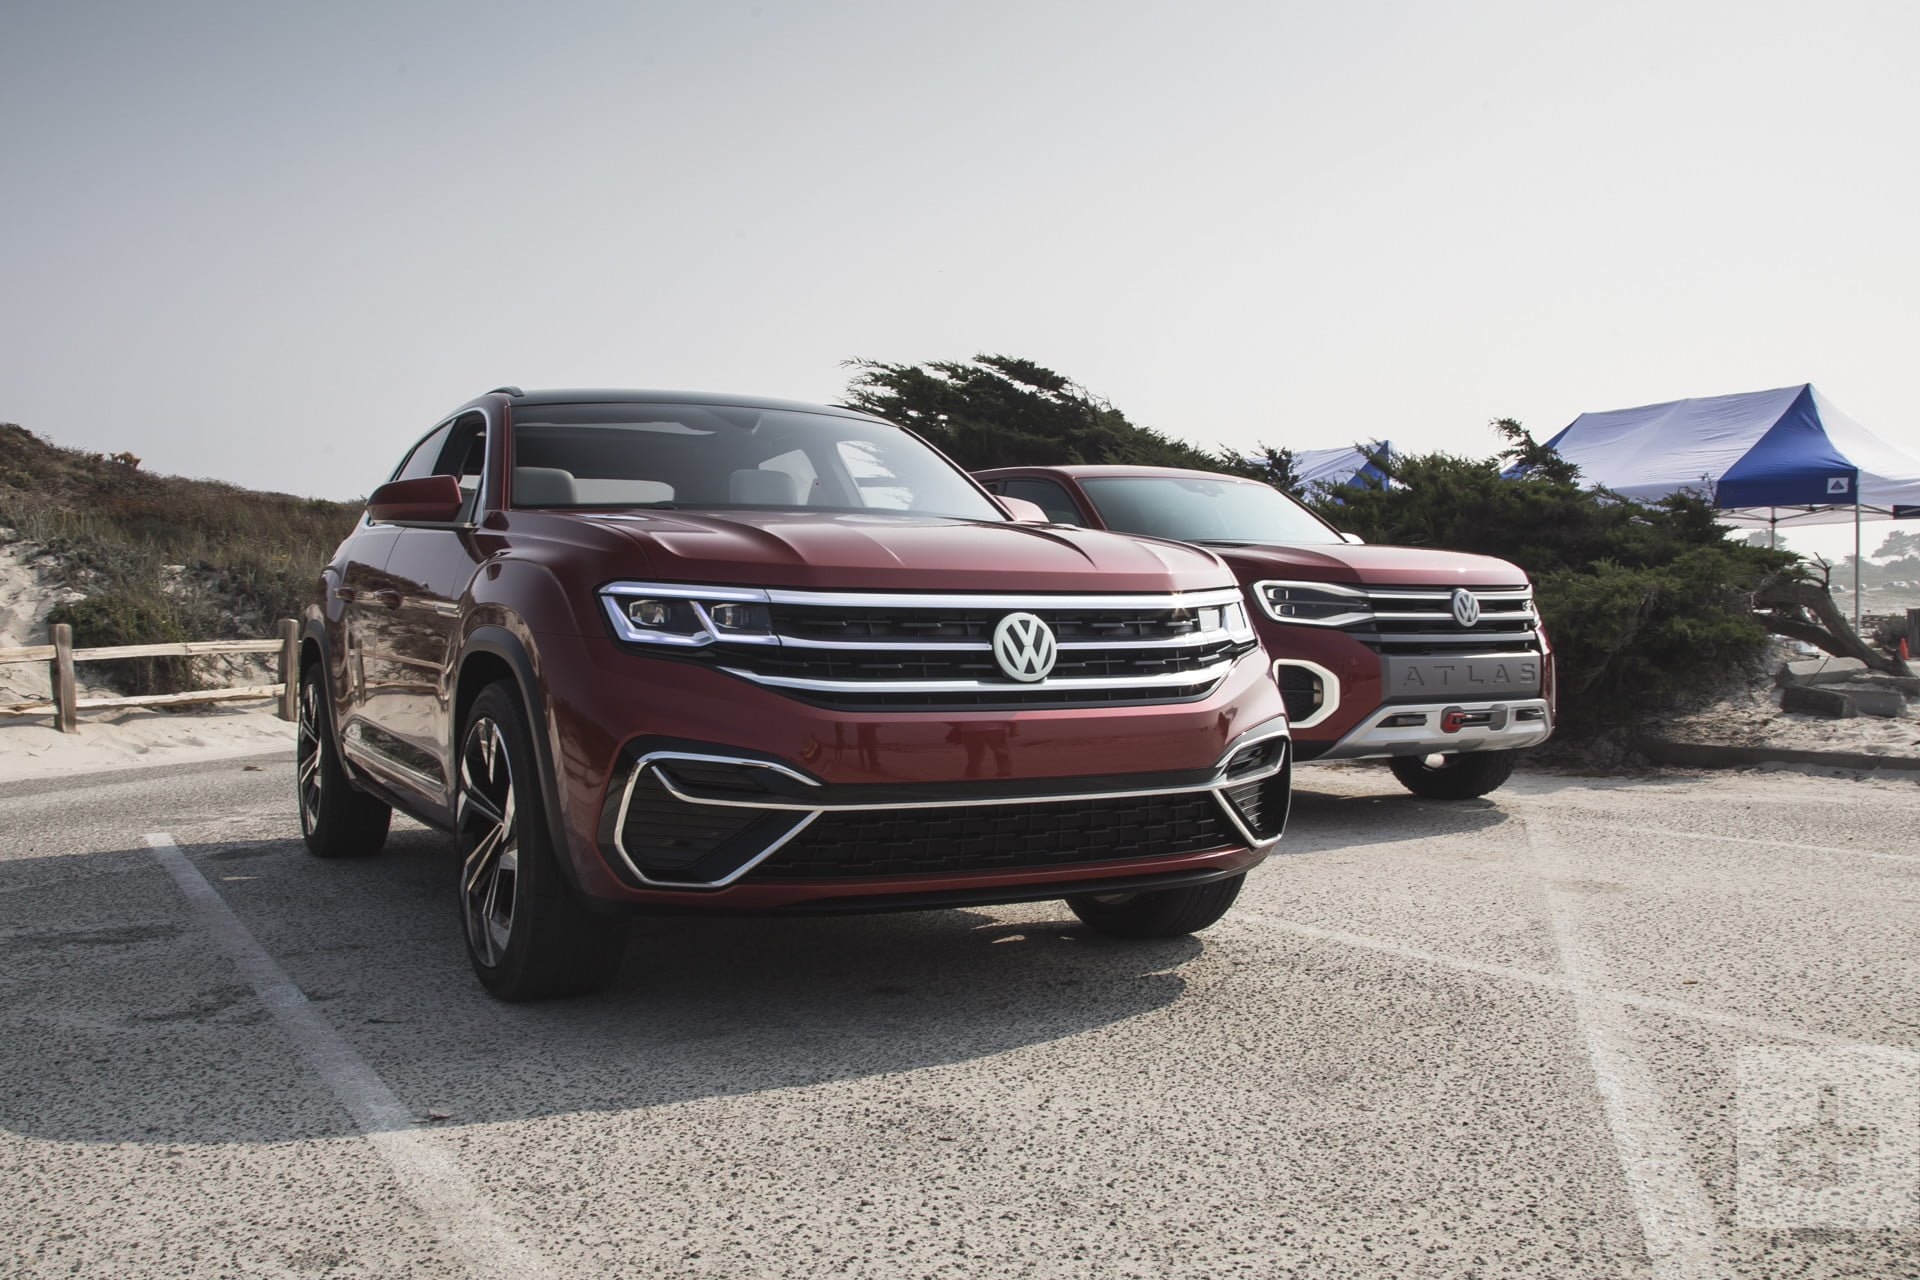 New 2019 Volkswagen-Atlas V6 SEL 4Motion Atlas V6 SEL 4Motion for sale $43,195 at M and V Leasing in Brooklyn NY 11223 1